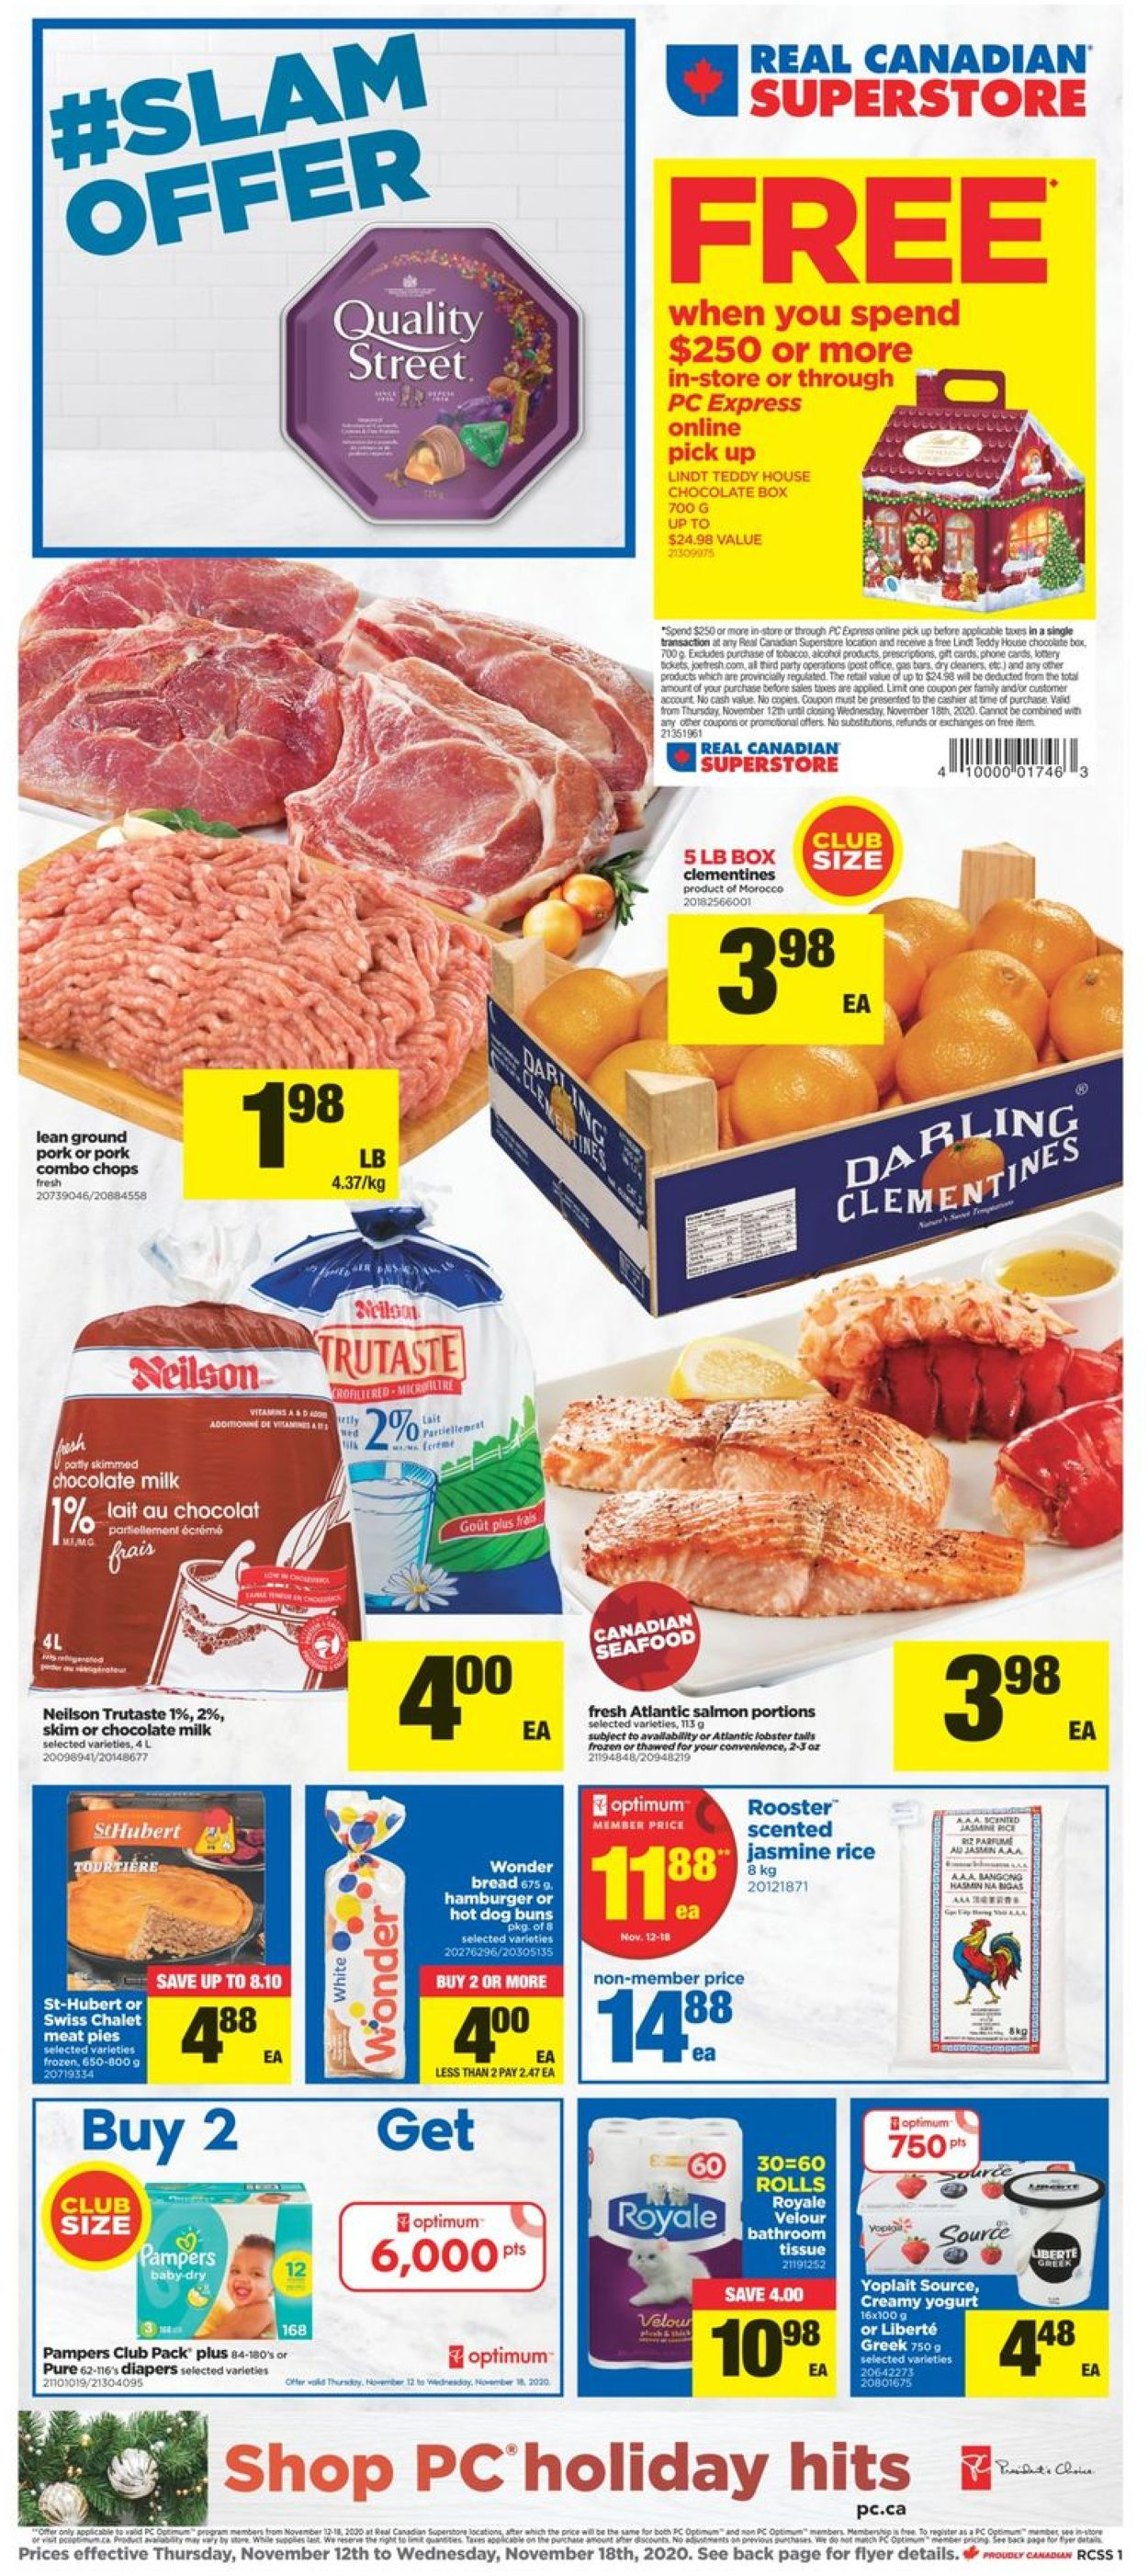 Real Canadian Superstore - Holiday 2020 Flyer - 11/12-11/18/2020